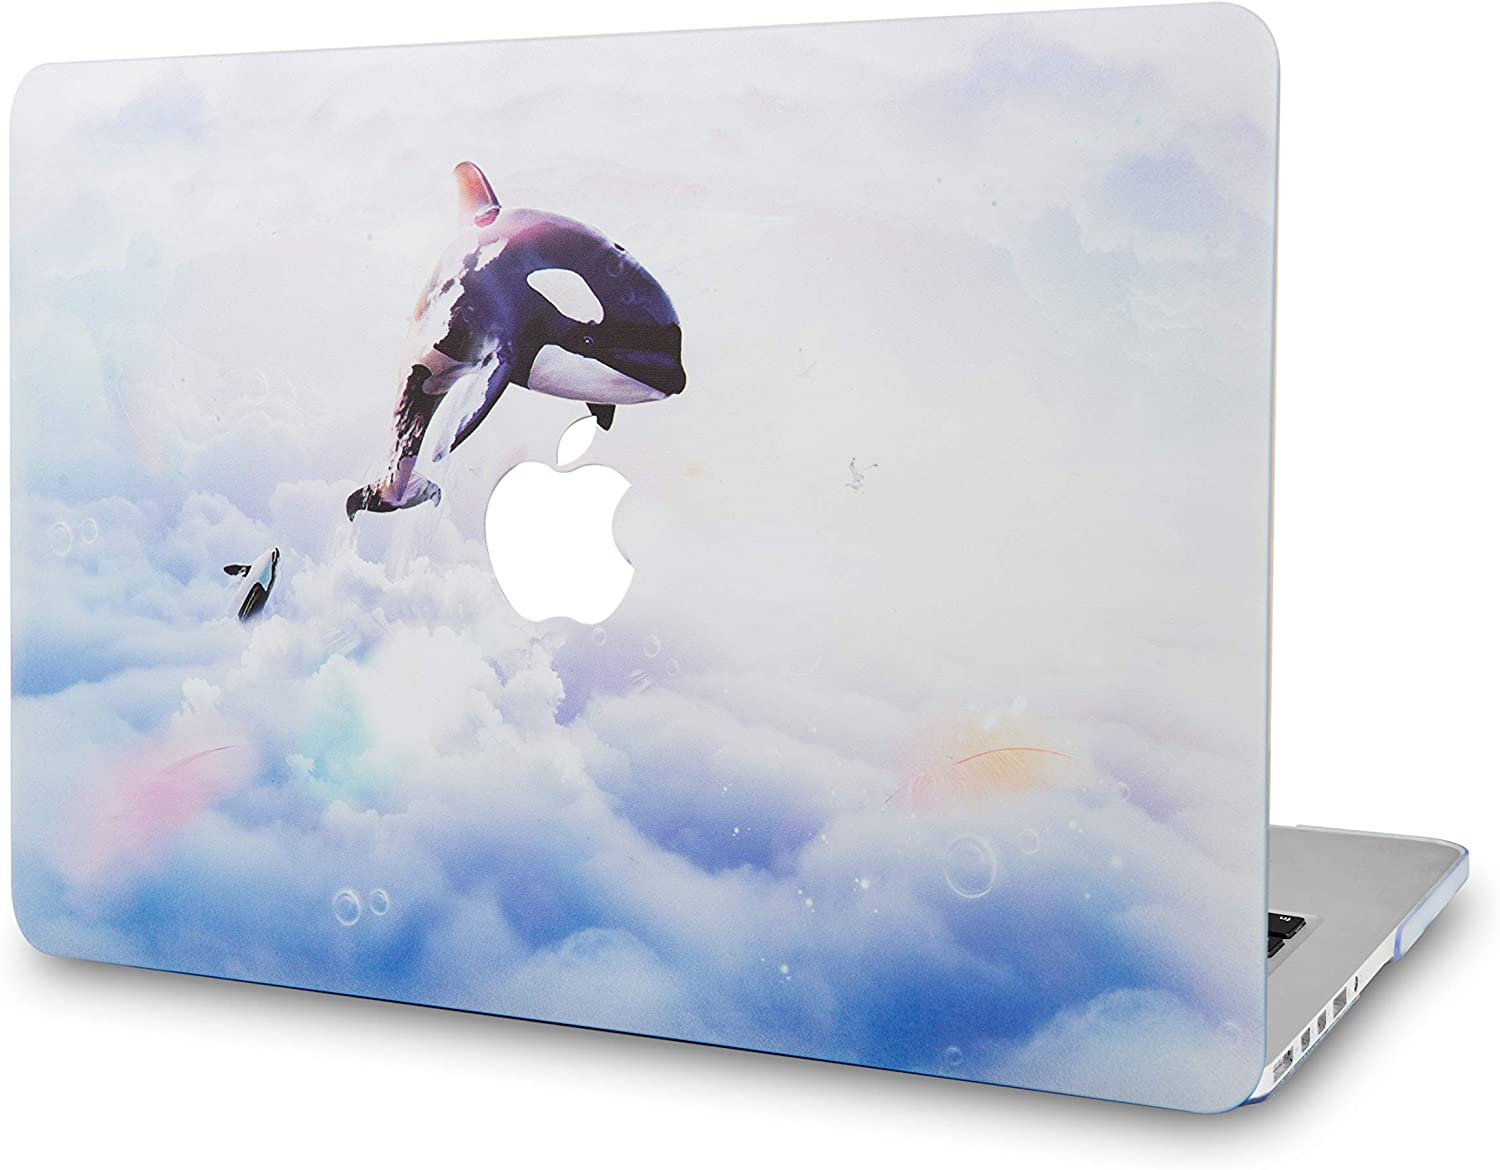 LuvCaseLaptopCaseforMacBookAir 13 Inch A1466 / A1369 (No Touch ID)RubberizedPlasticHardShellCover (Dolphin)